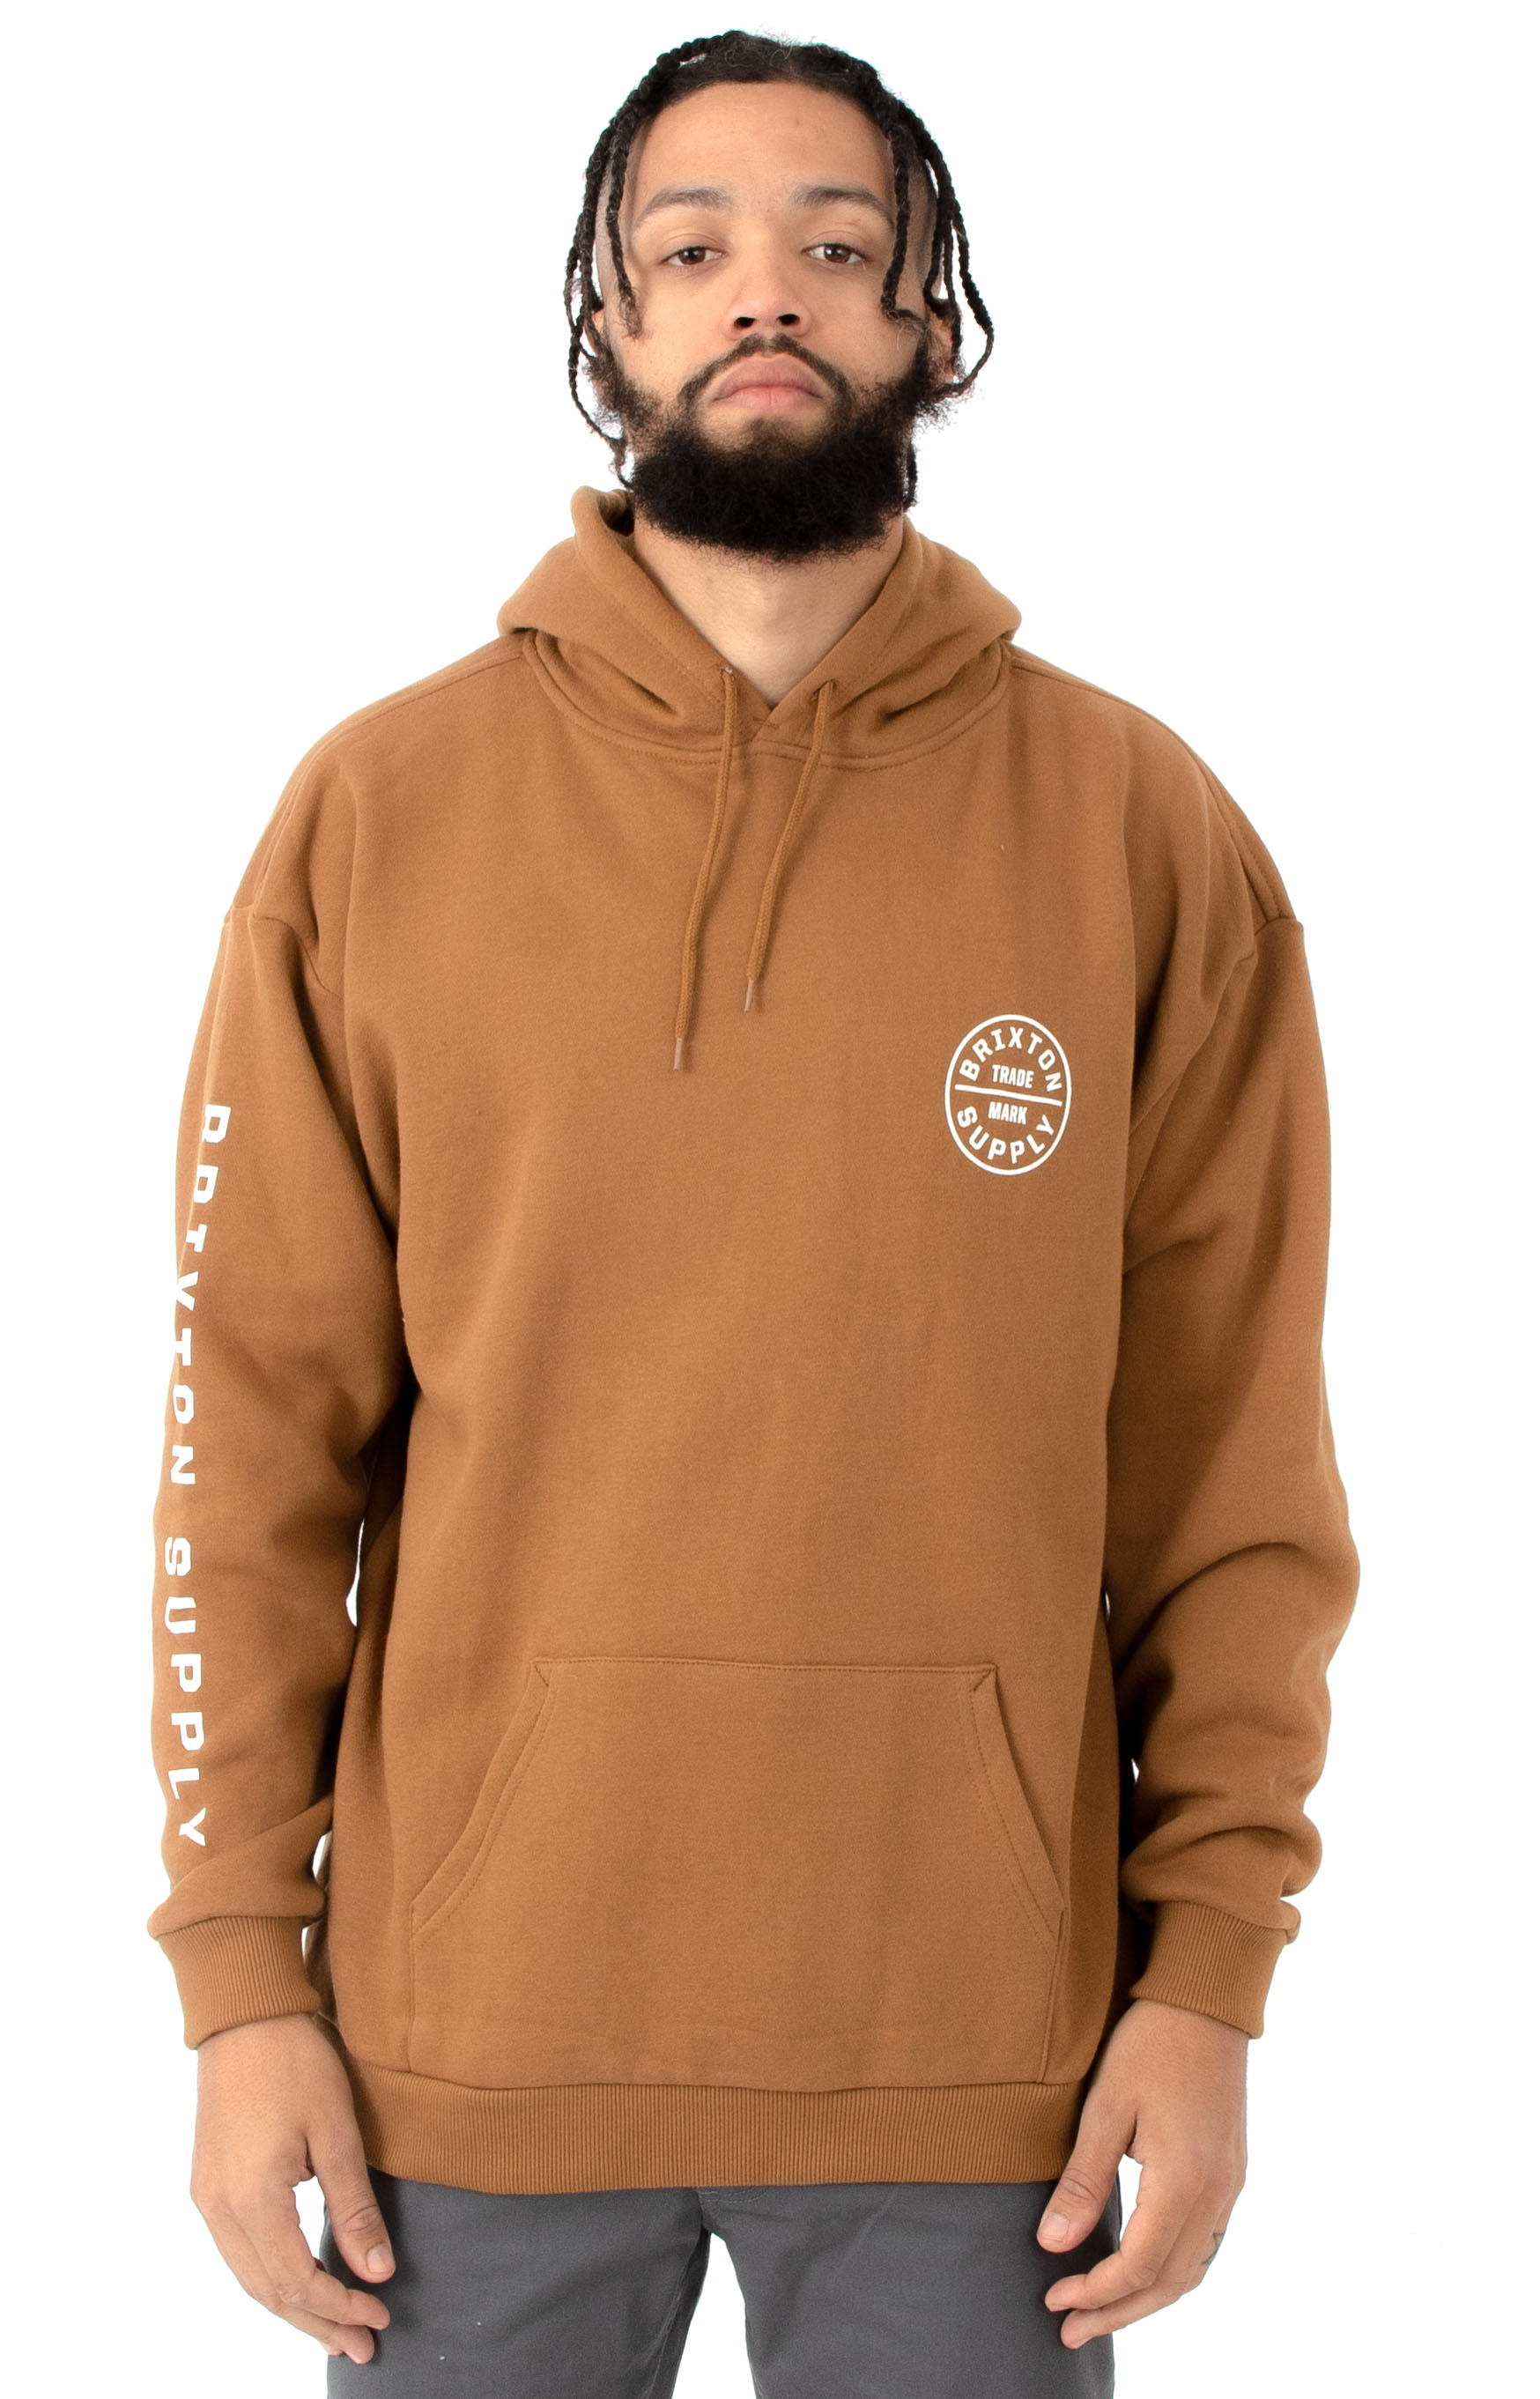 9551ae6709 Brixton, Oath II Pullover Hoodie - Washed Copper | MLTD